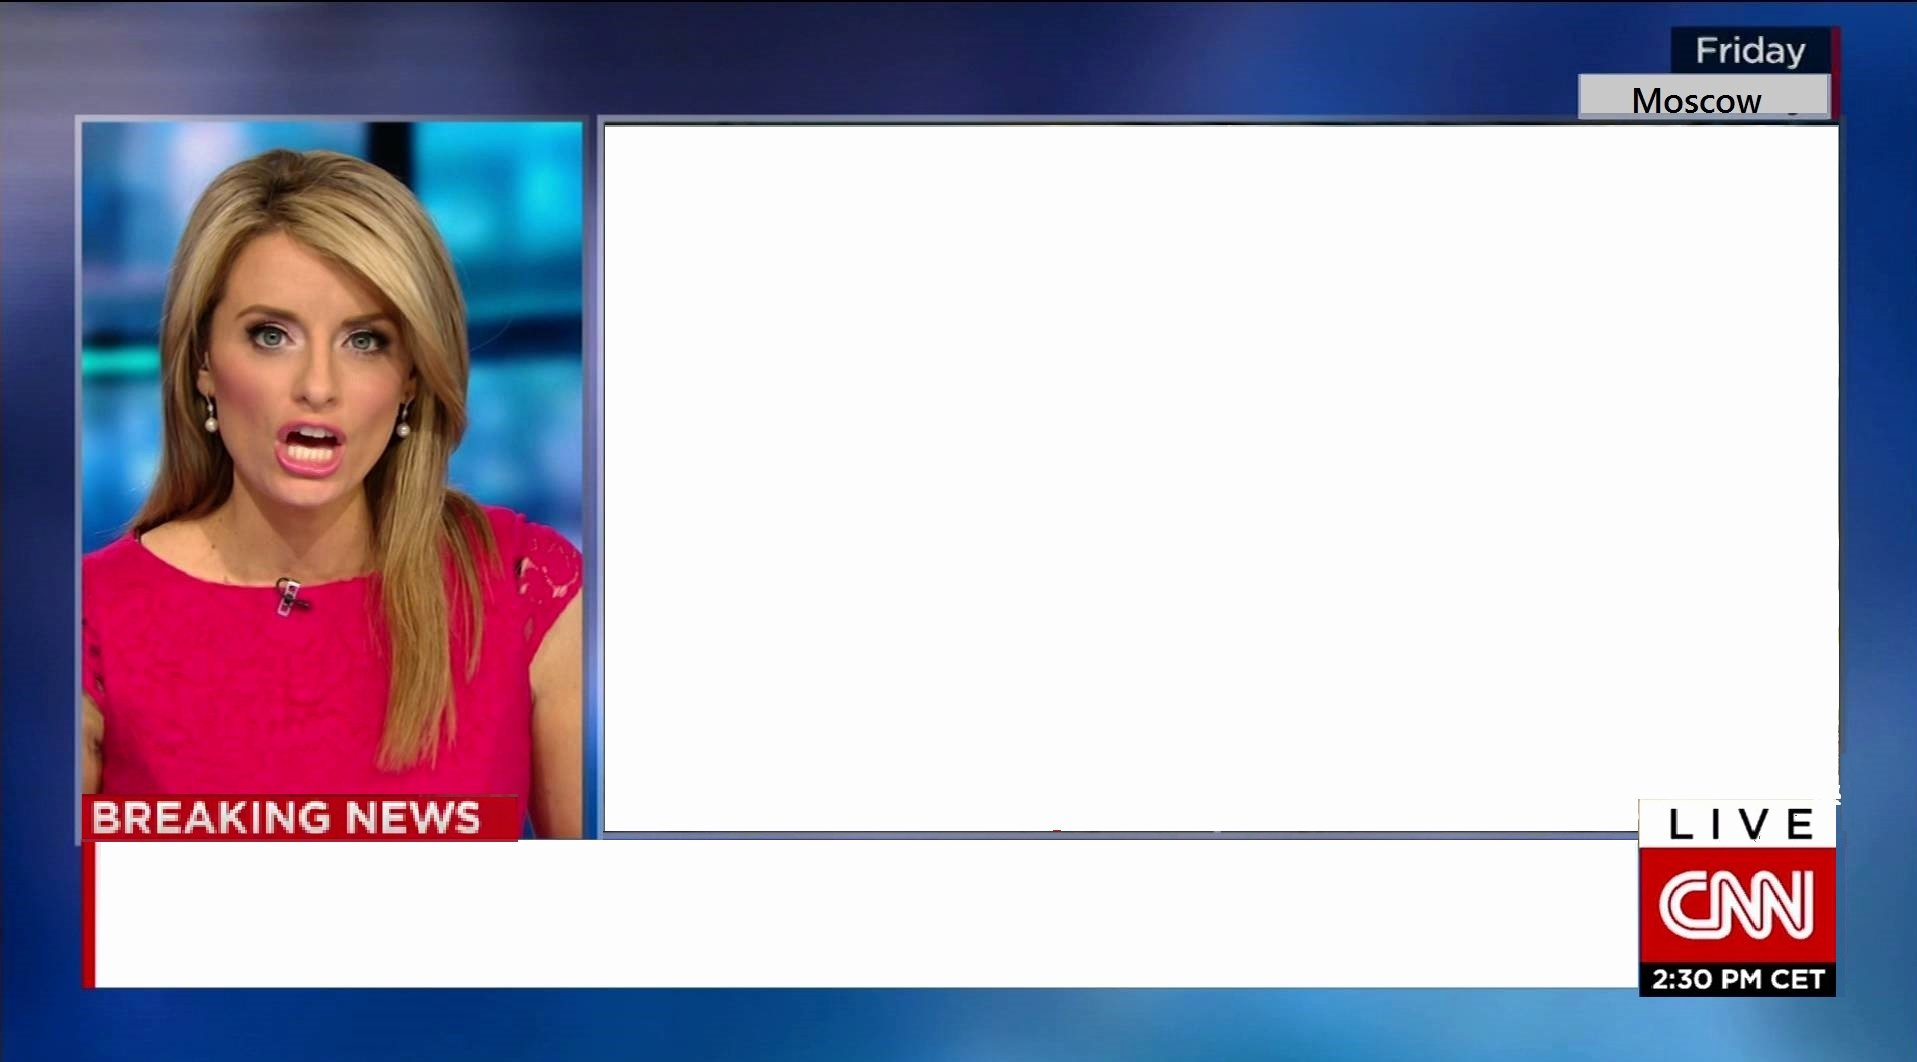 Breaking News Template Free Beautiful Cnn Russia Ties Template Memetemplates Ficial